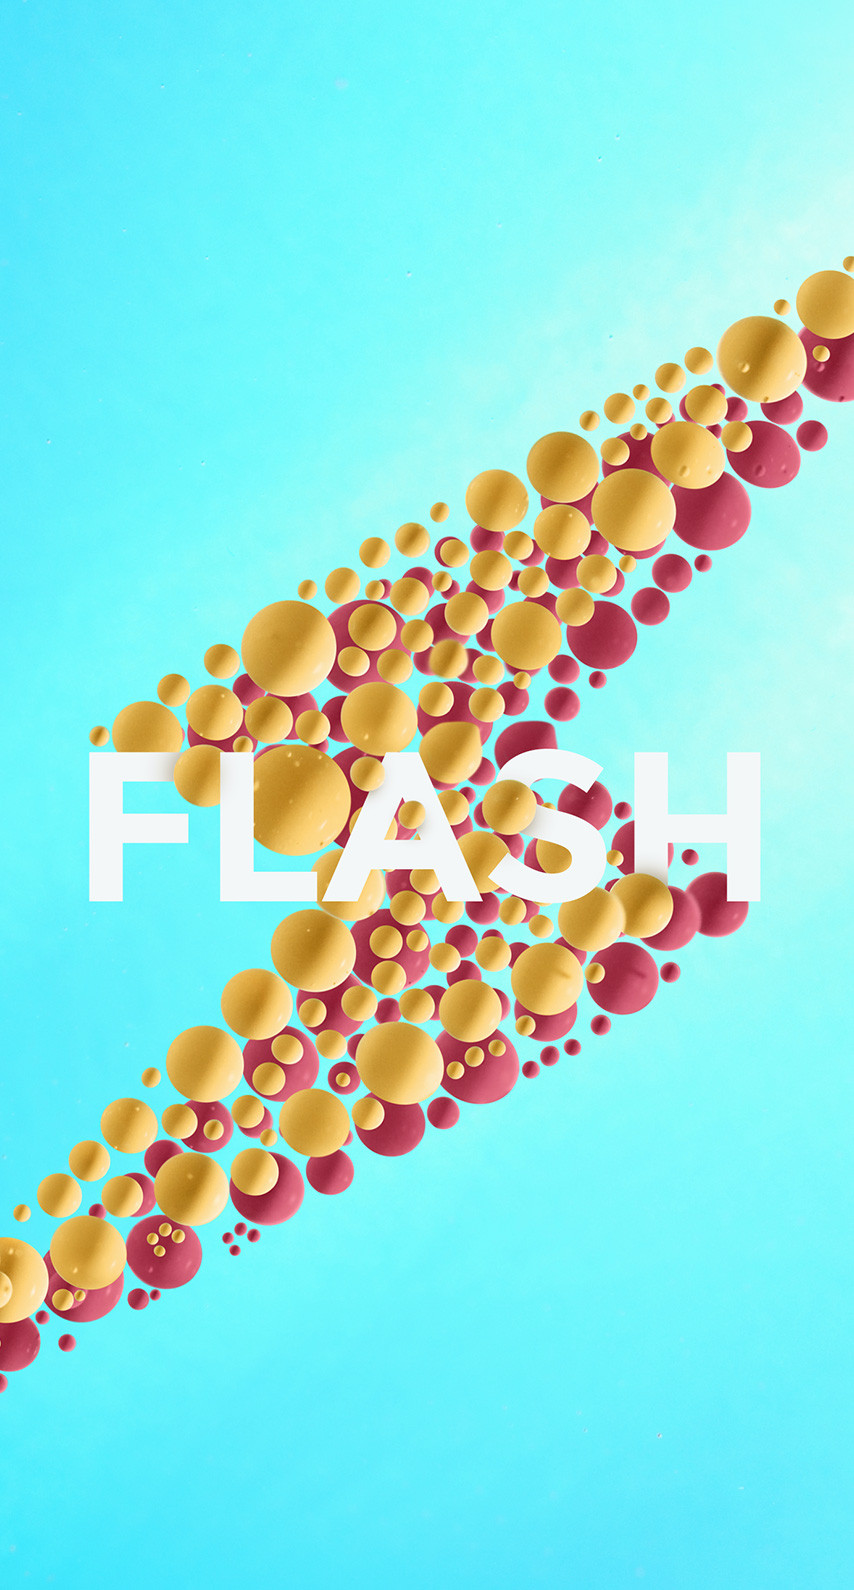 flash, computer wallpaper